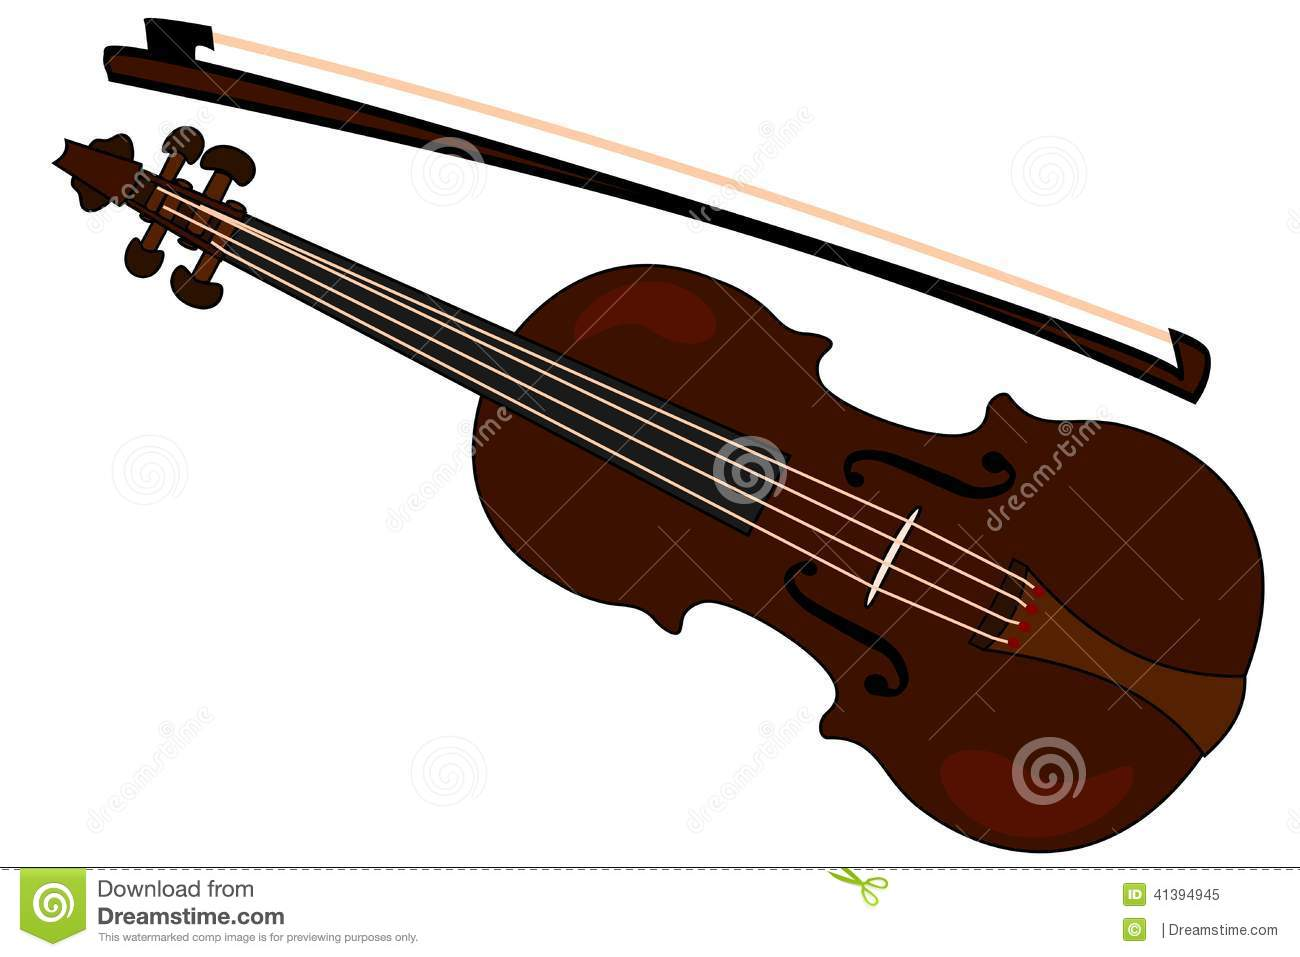 Cartoon Violin Images: Clipart Suggest